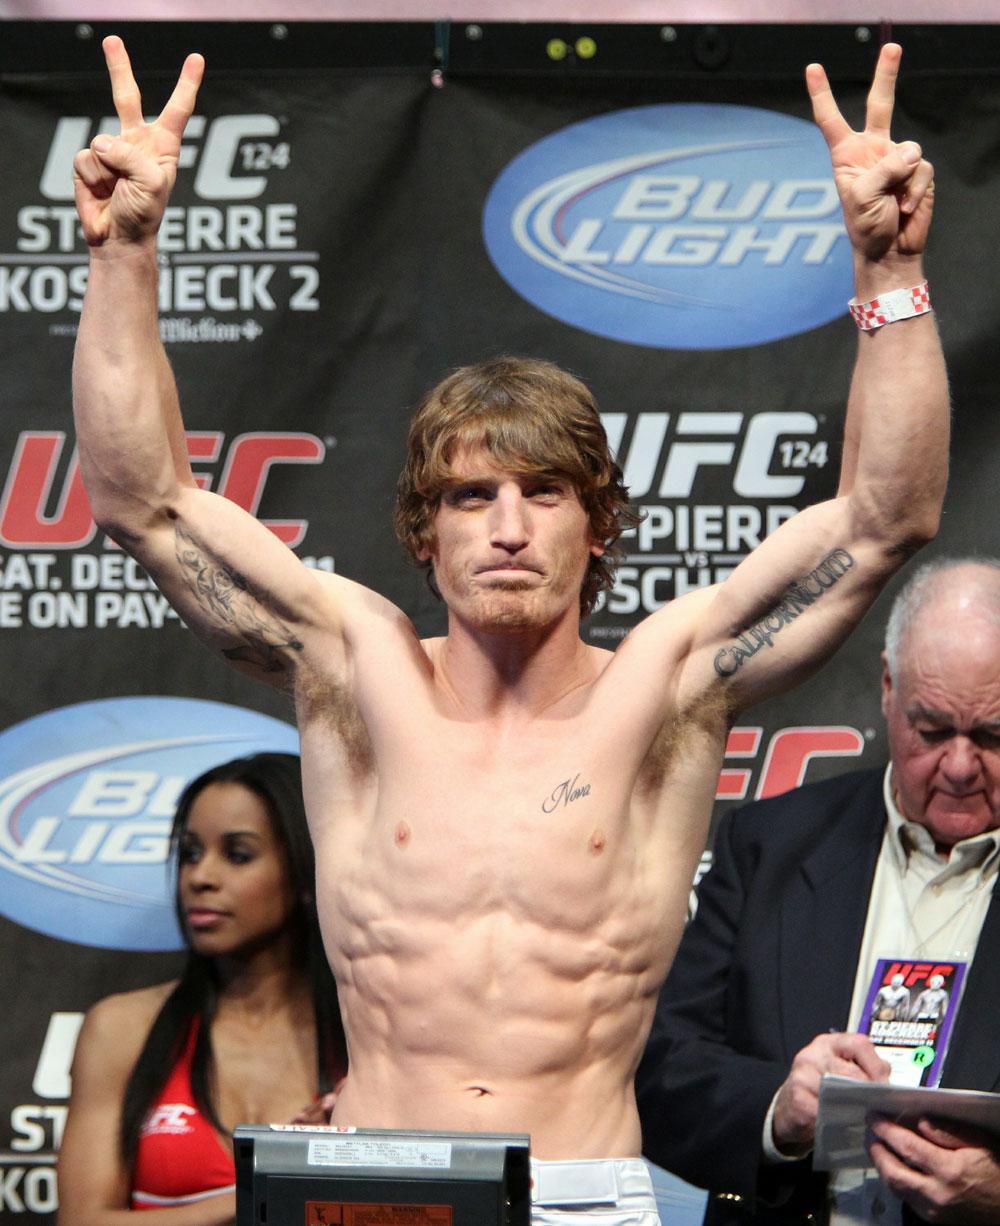 UFC 124 Weigh-in: Mac Danzig weighs in at 156lbs.